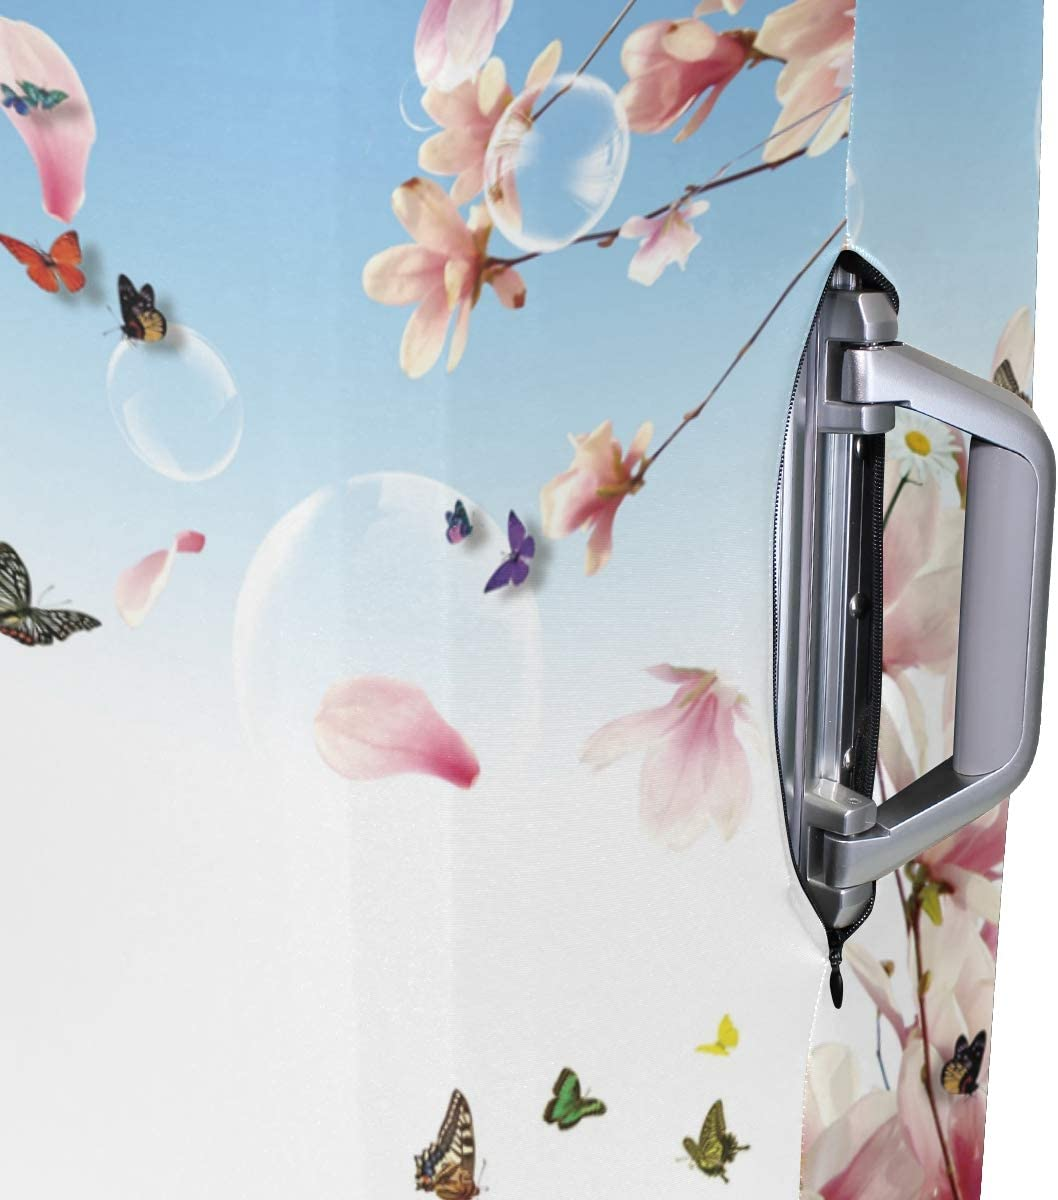 FOLPPLY Spring Blossom Butterfly Luggage Cover Baggage Suitcase Travel Protector Fit for 18-32 Inch